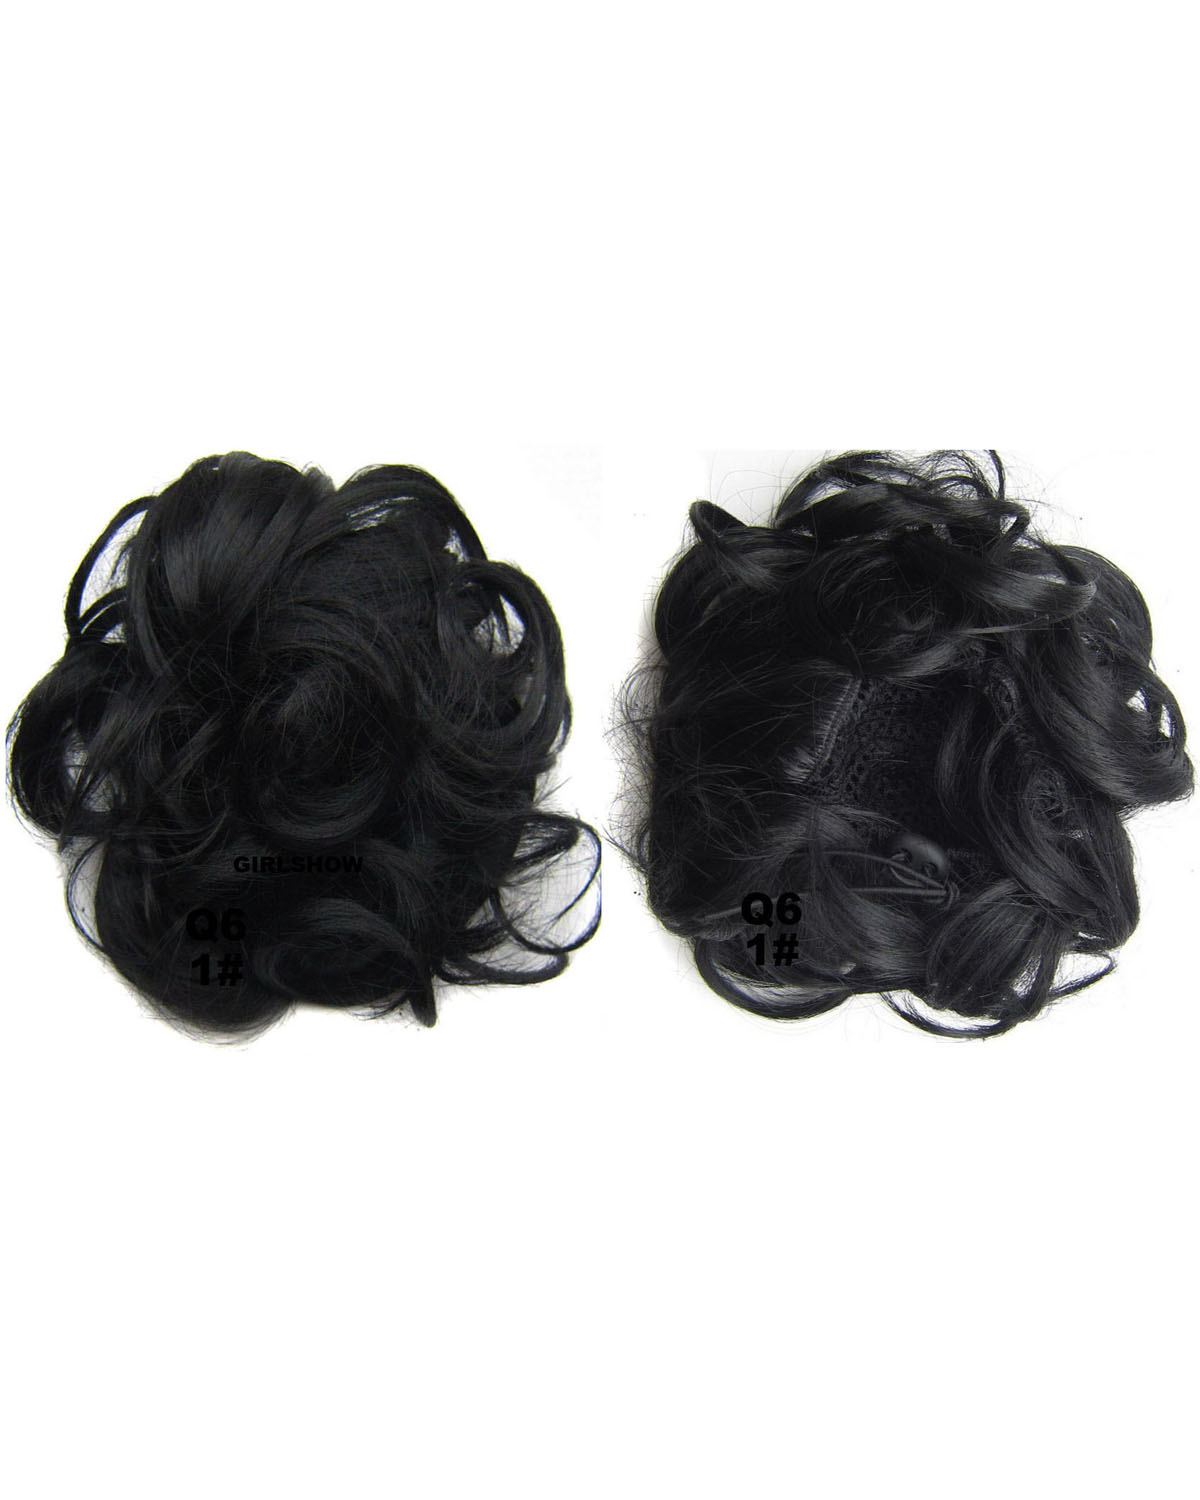 Ladies Full Curly and Short Hair Buns Drawstring Synthetic Hair Extension Bride Scrunchies 1#